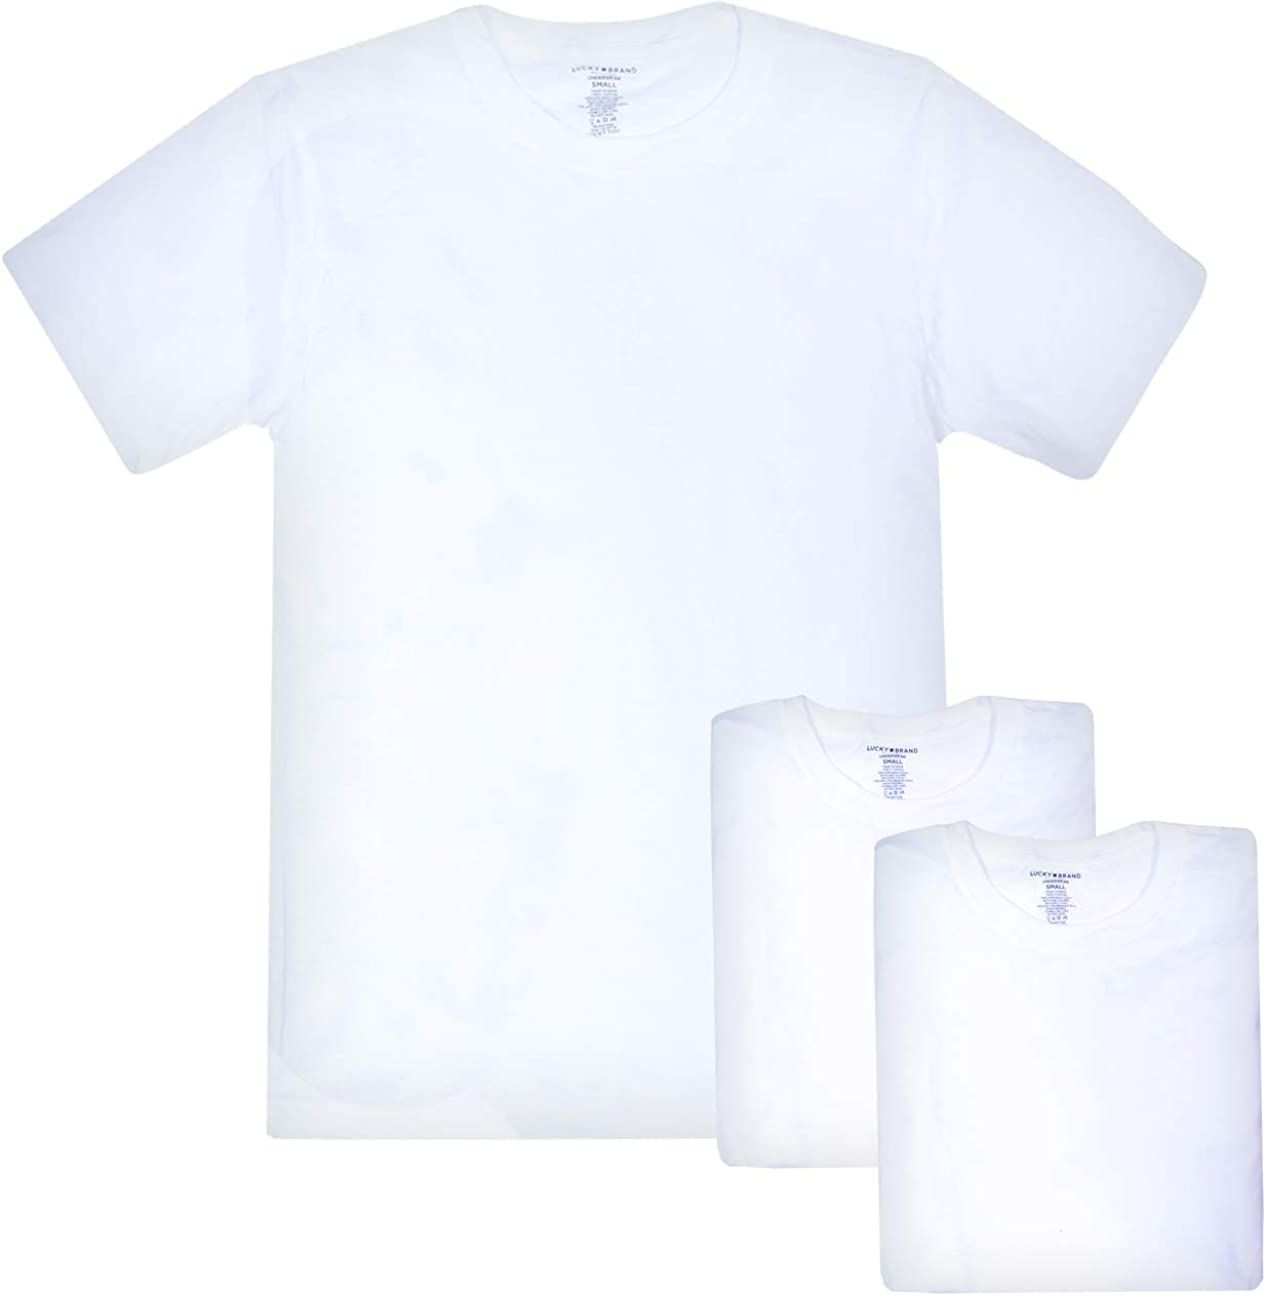 Package 3Pack 100/%Cotton White Crew Tees T-Shirt New 42-44 NWT Lucky Brand L